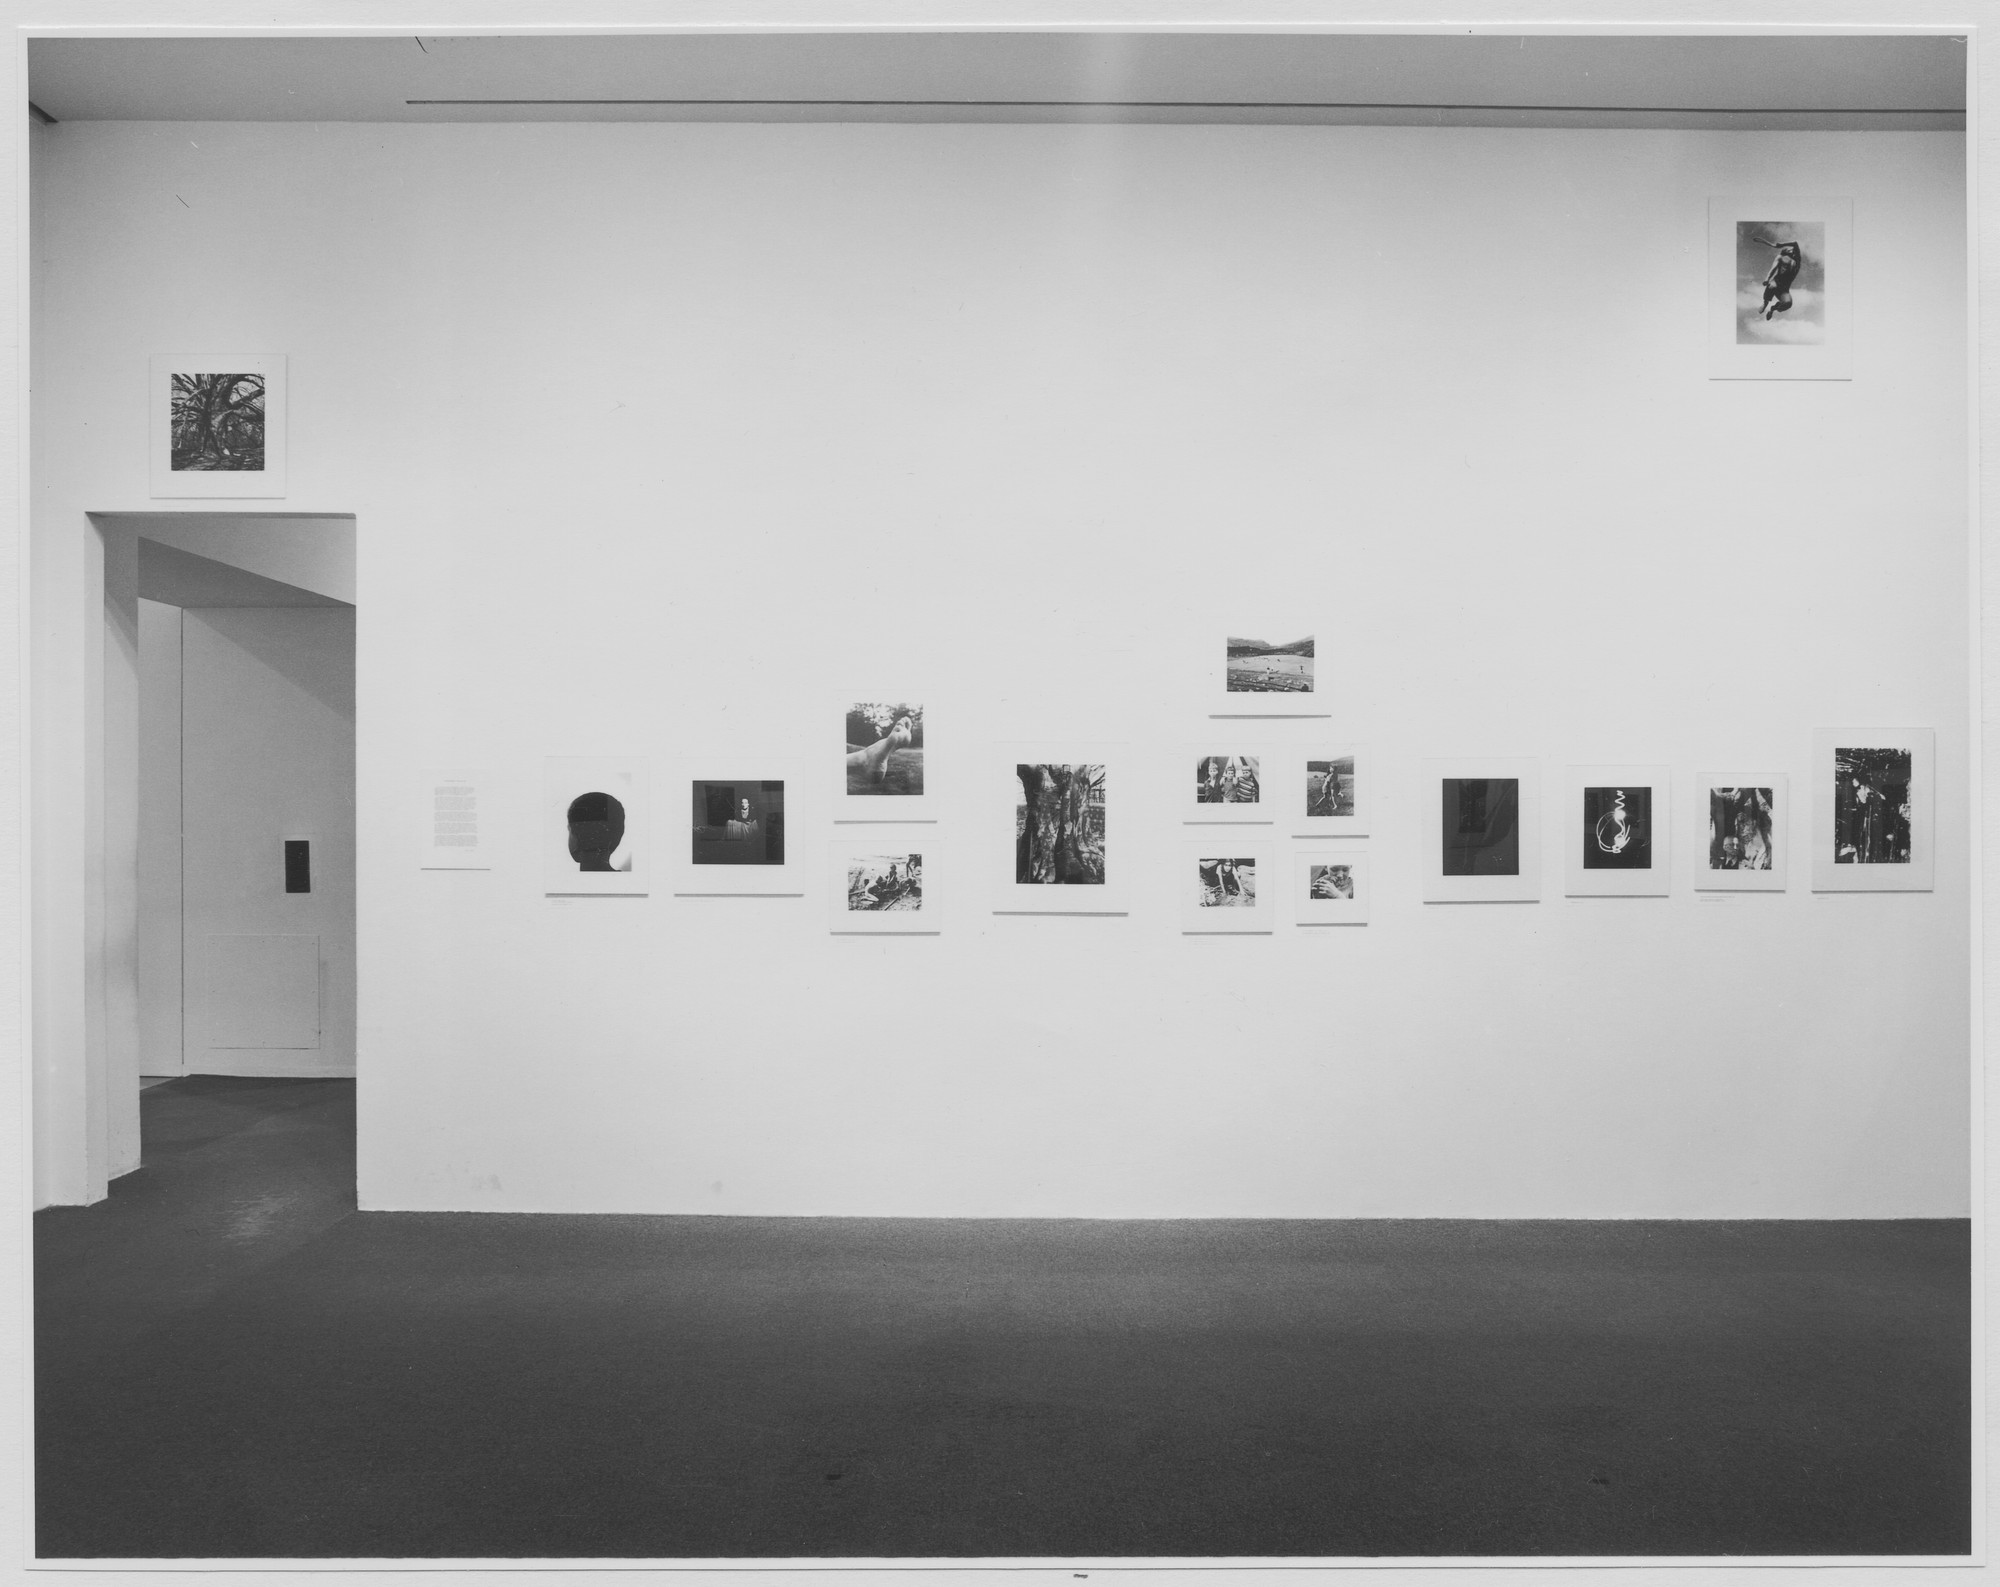 "Installation view of the exhibition, ""Barbara Morgan Photographs."" March 7, 1972–May 30, 1972. Photographic Archive. The Museum of Modern Art Archives, New York. IN999.1. Photograph by James Mathews."